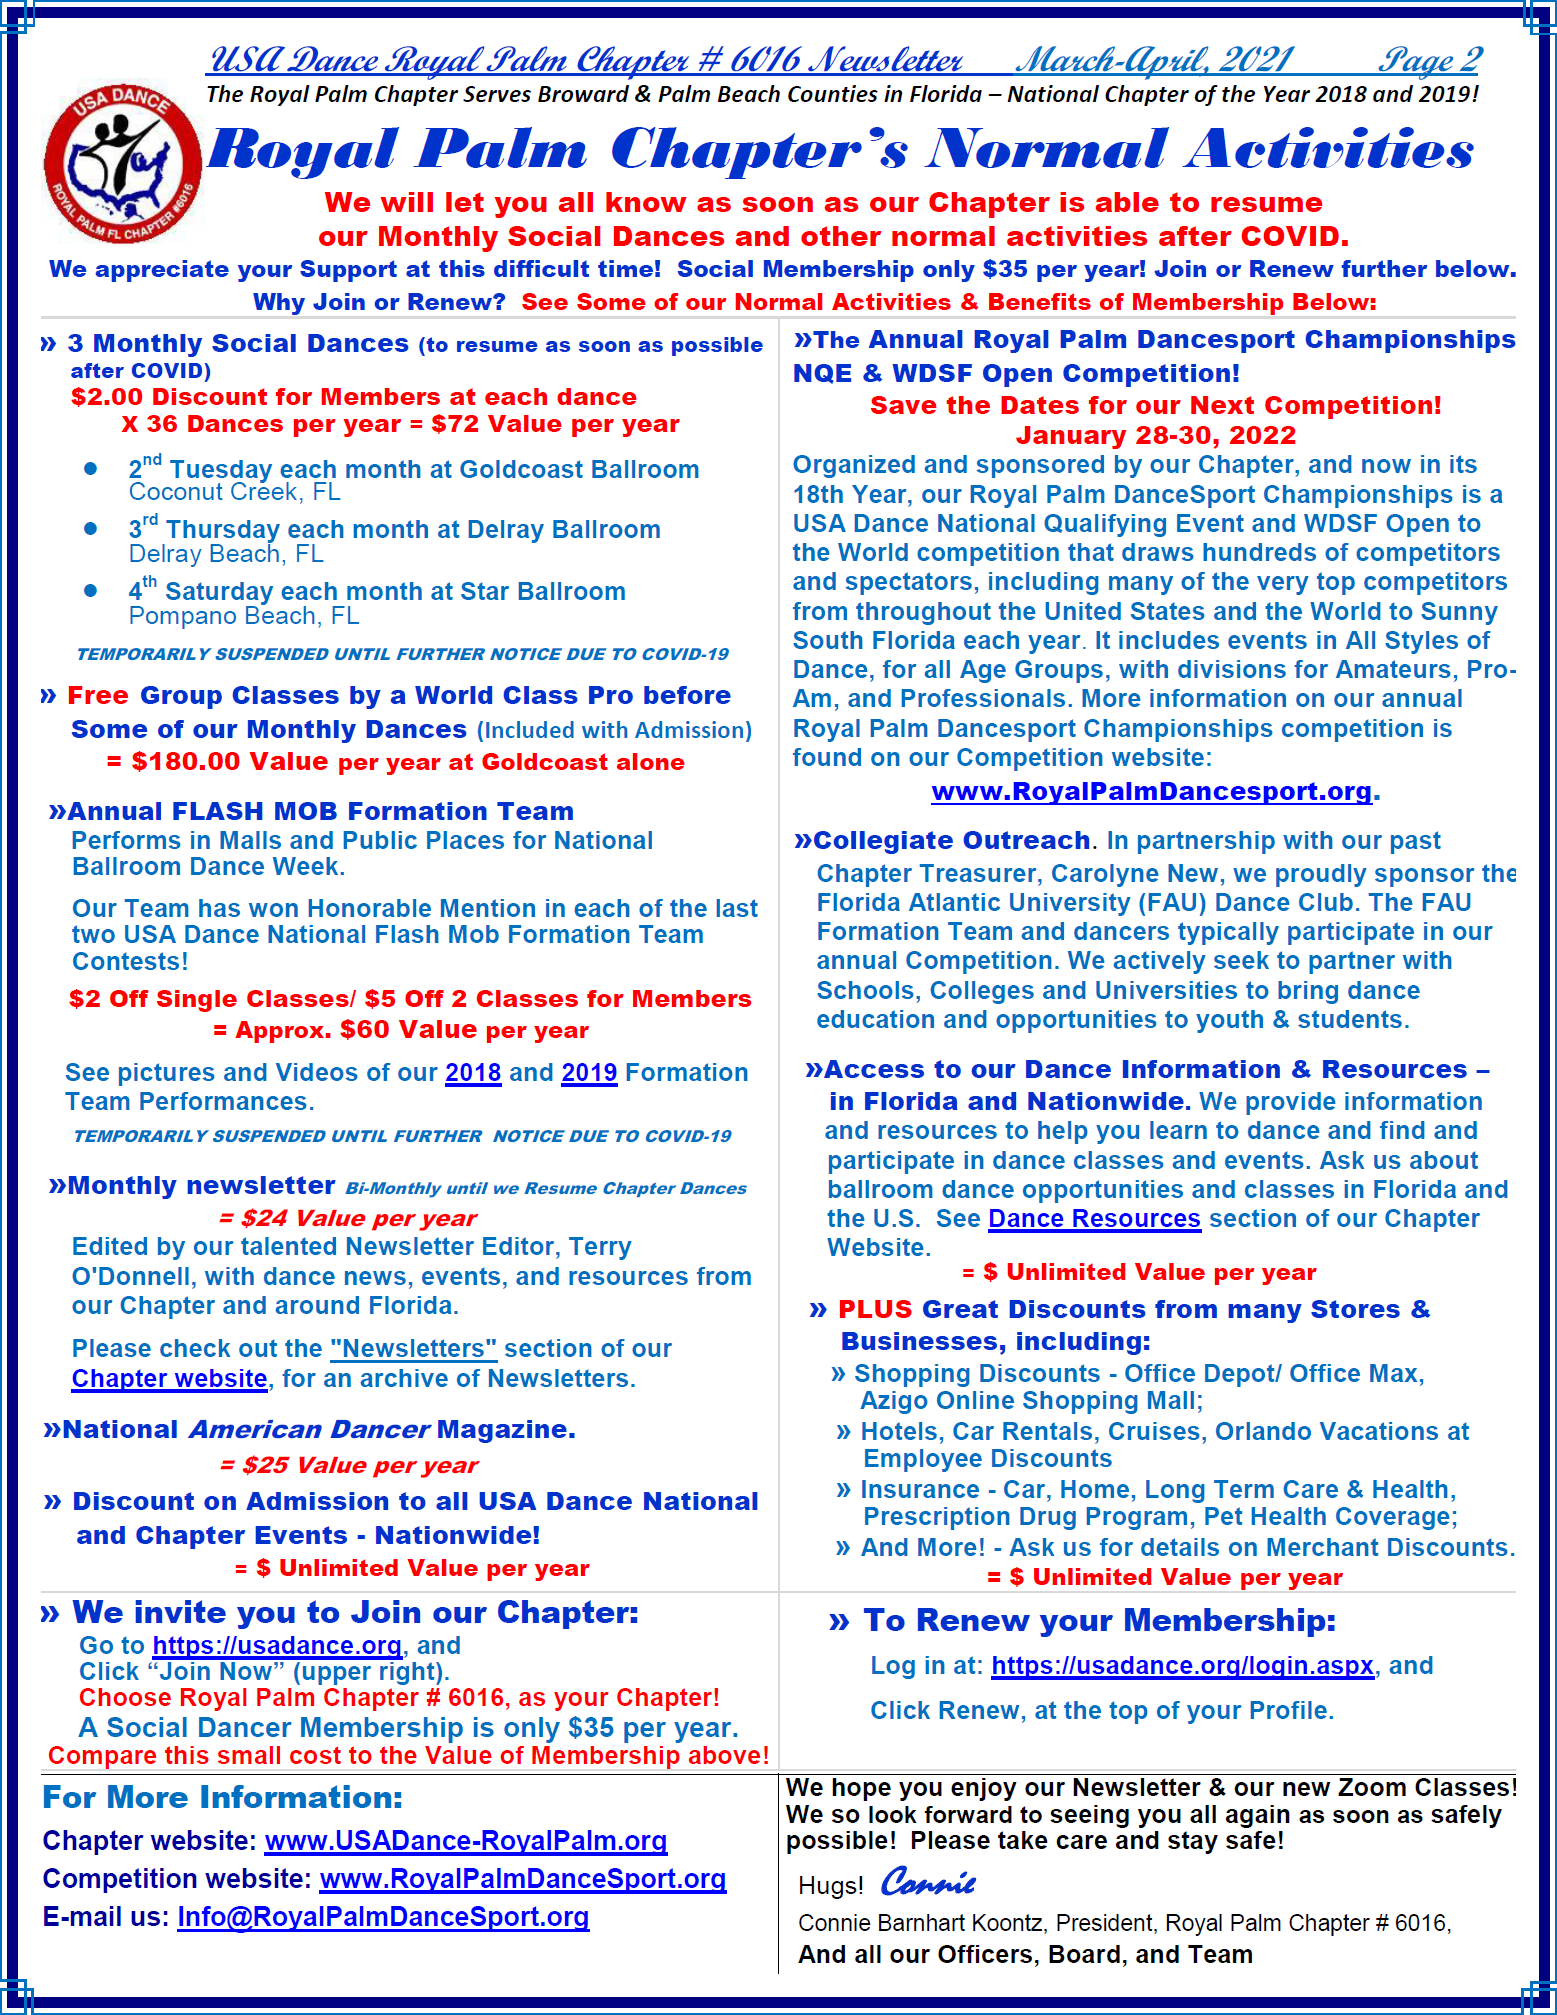 Royal Palm Chapter's Normal Activities - Page 2, March-April, 2021 Newsletter